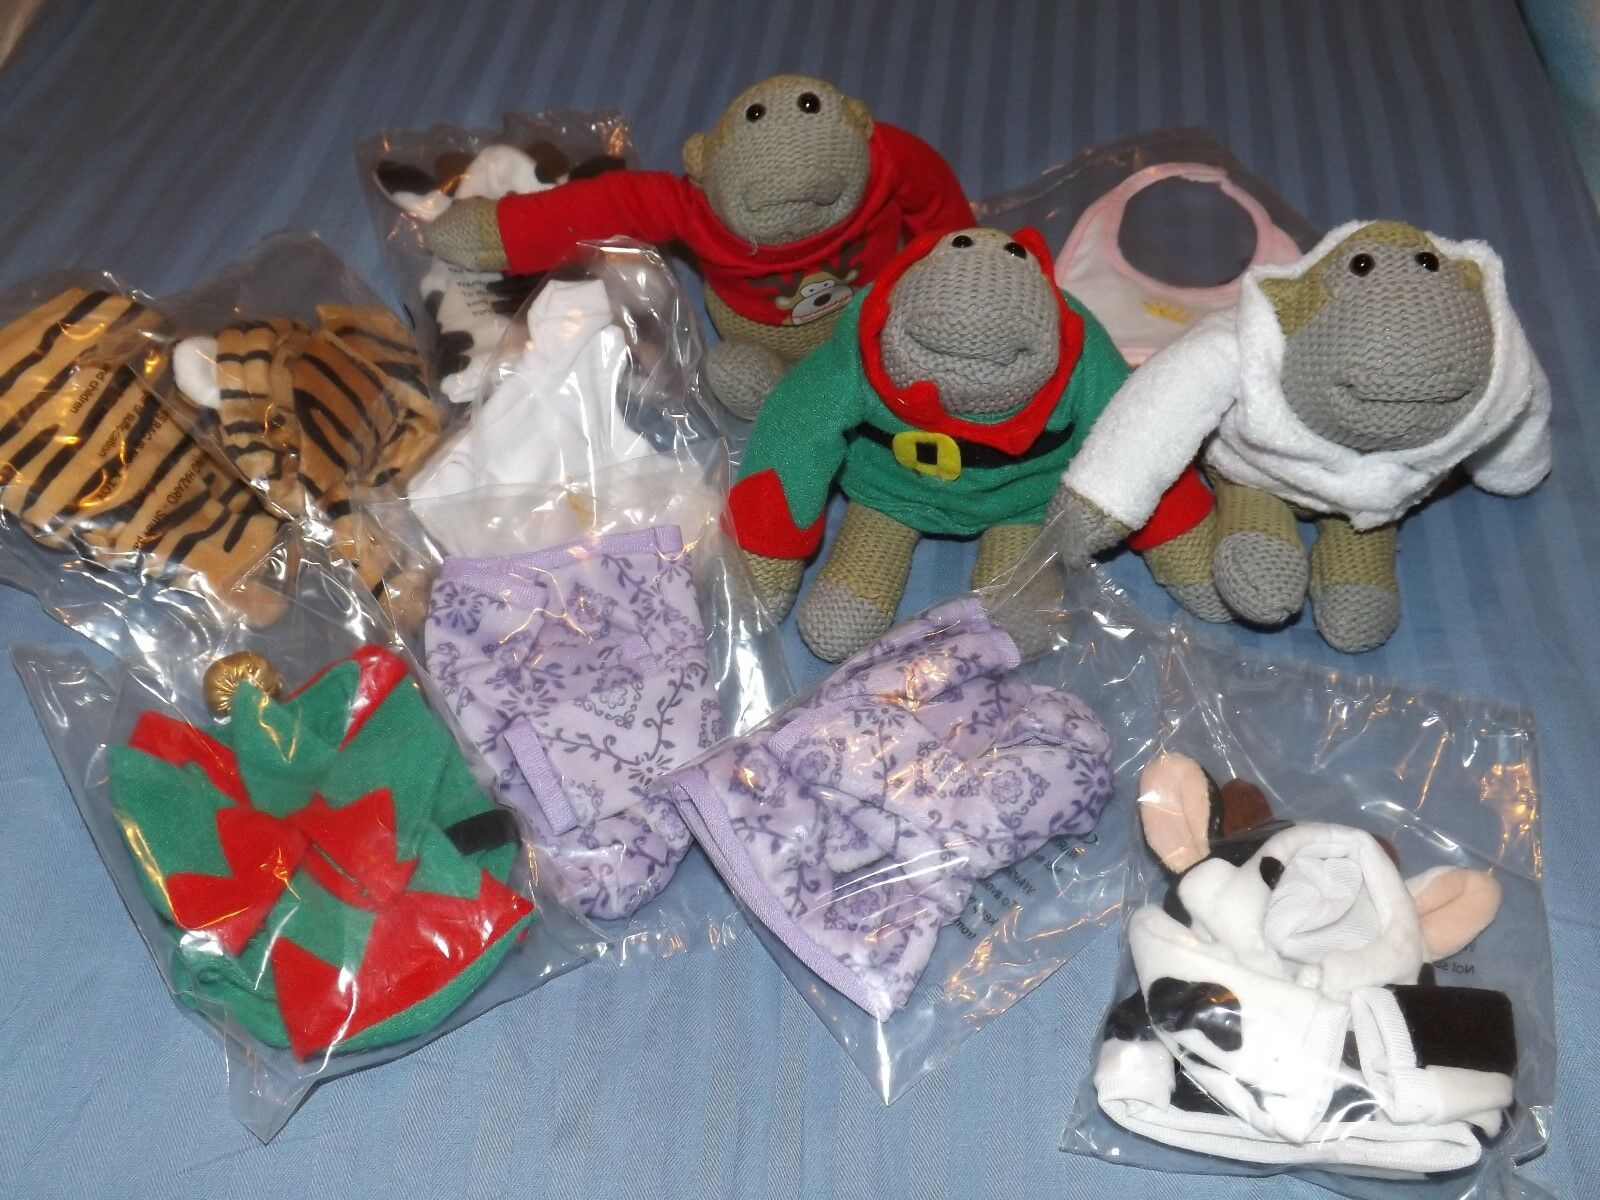 PG Tips monkey OFFICIAL OUTFITS AND MONKEYS LOTS TO CHOOSE FROM FREE UK POSTAGE